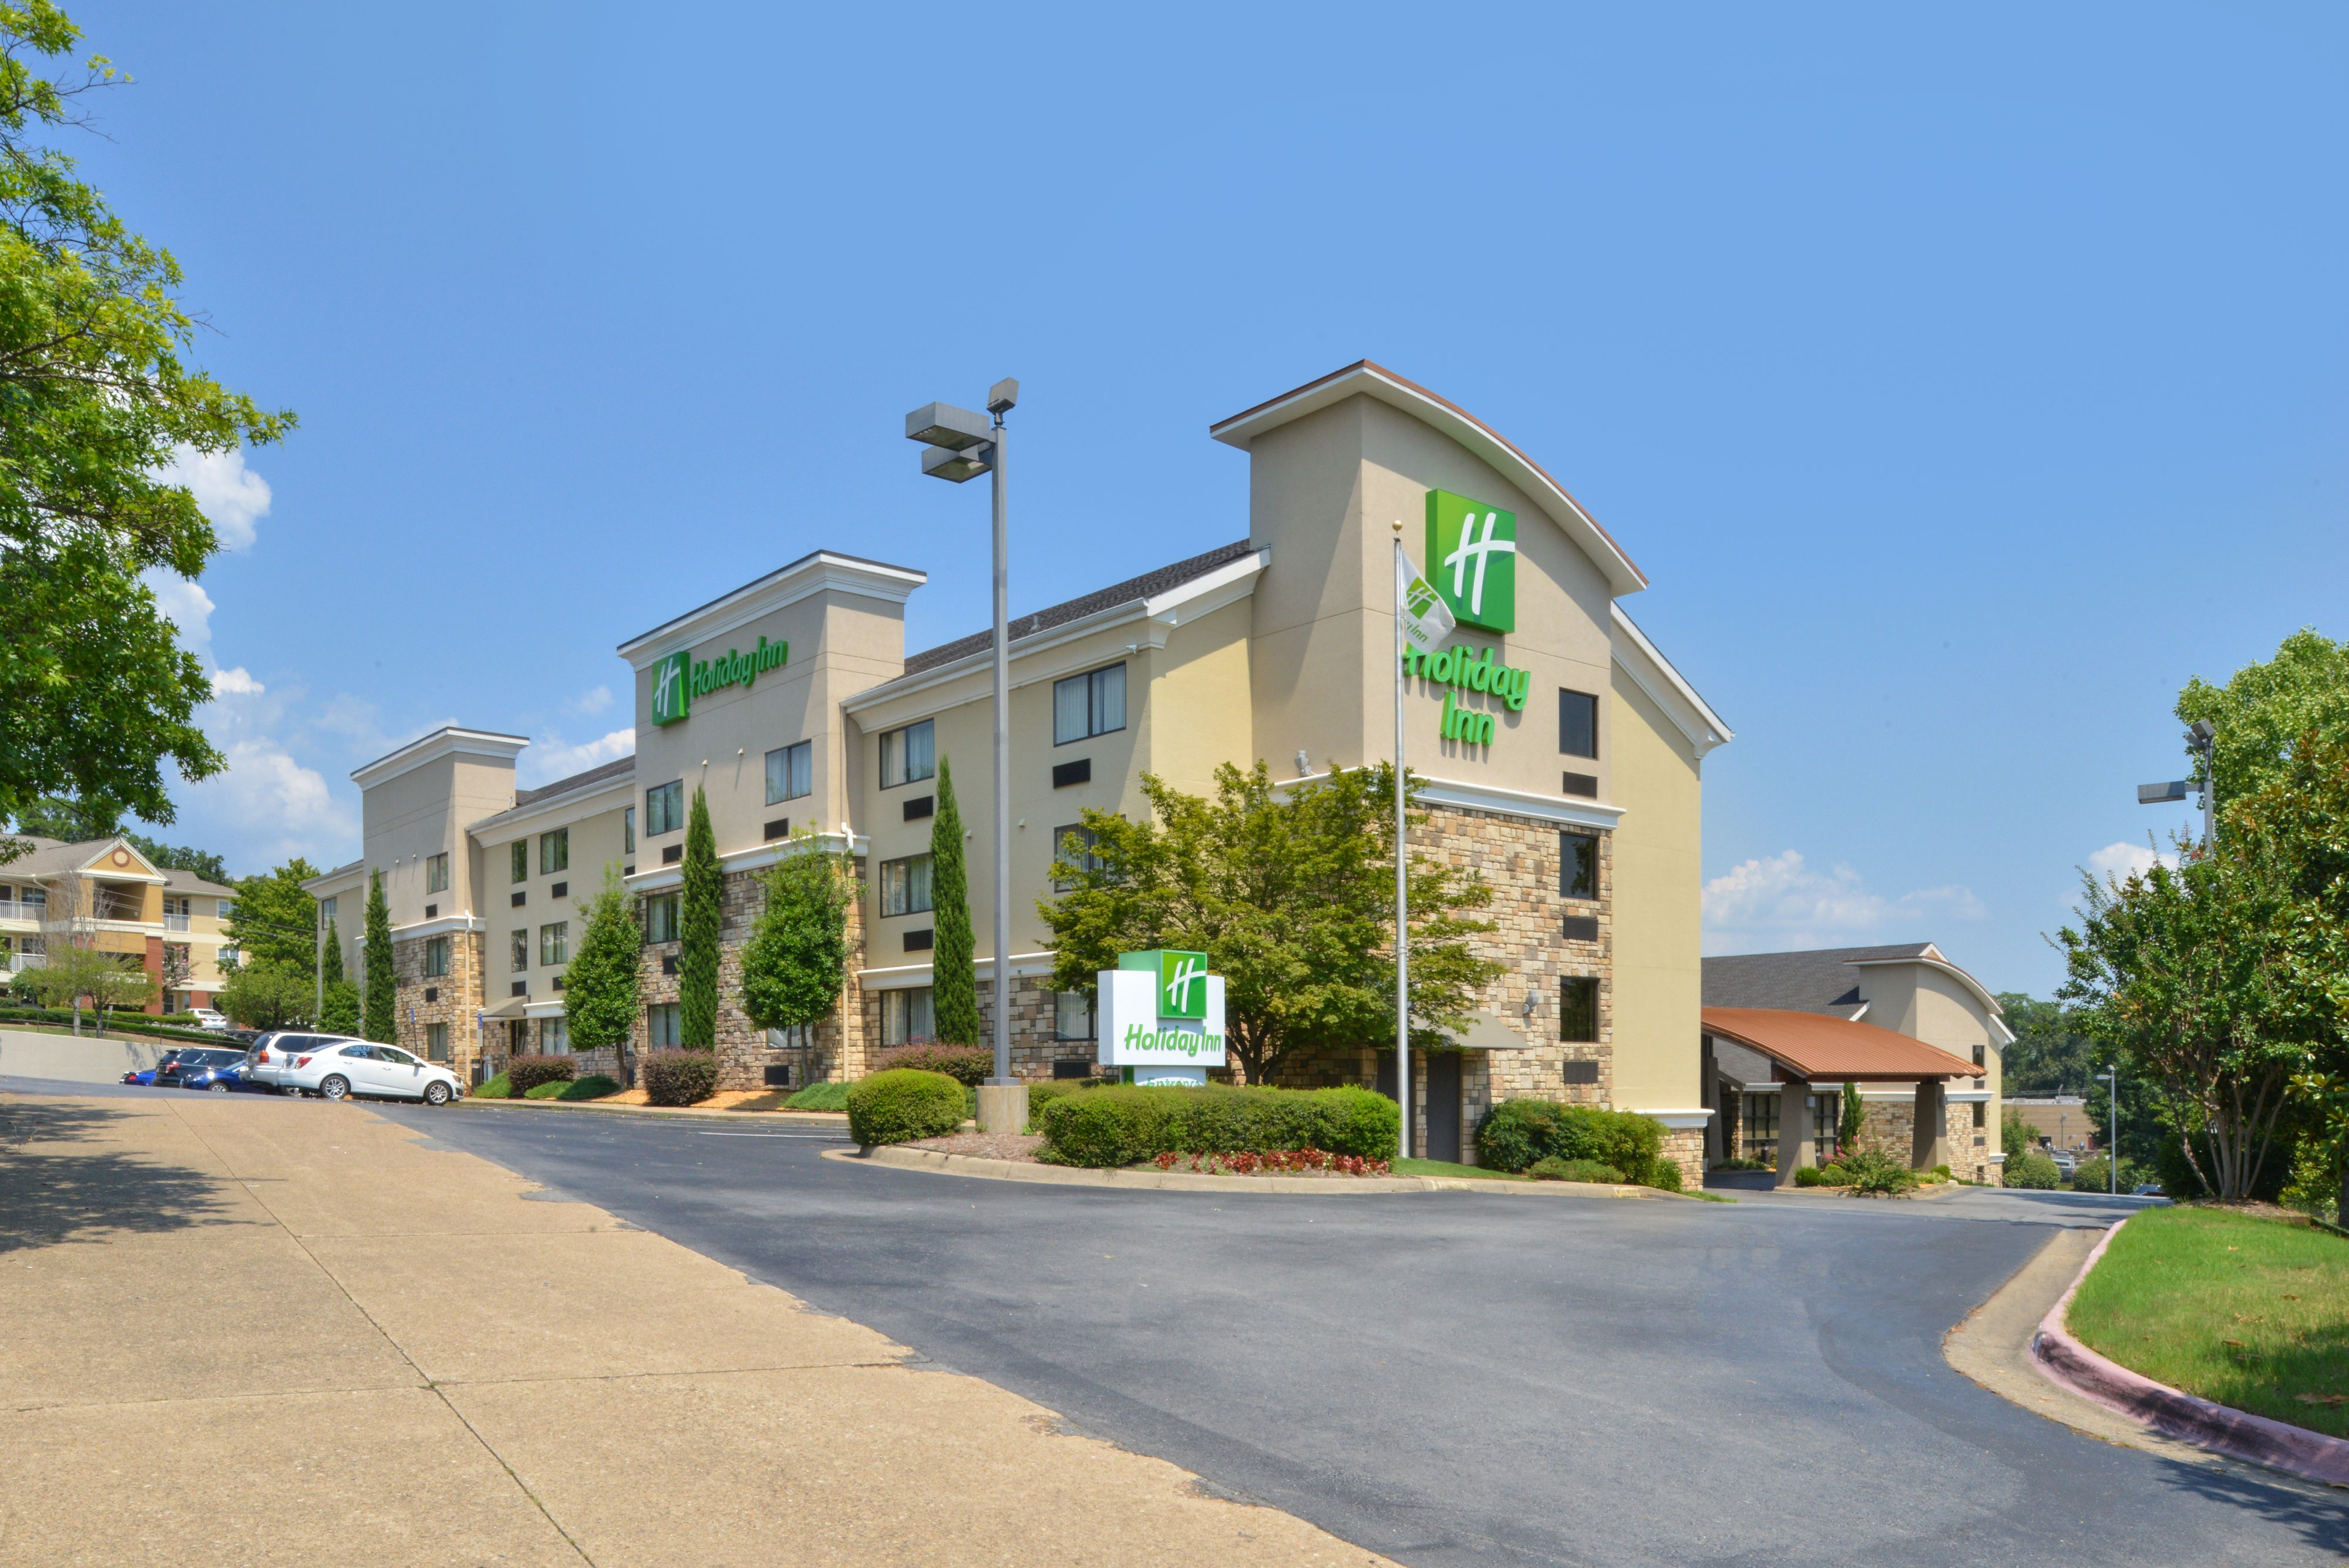 Holiday Inn Little Rock West Chenal Pkwy At 10920 Financial Centre Parkway Little Rock Ar On